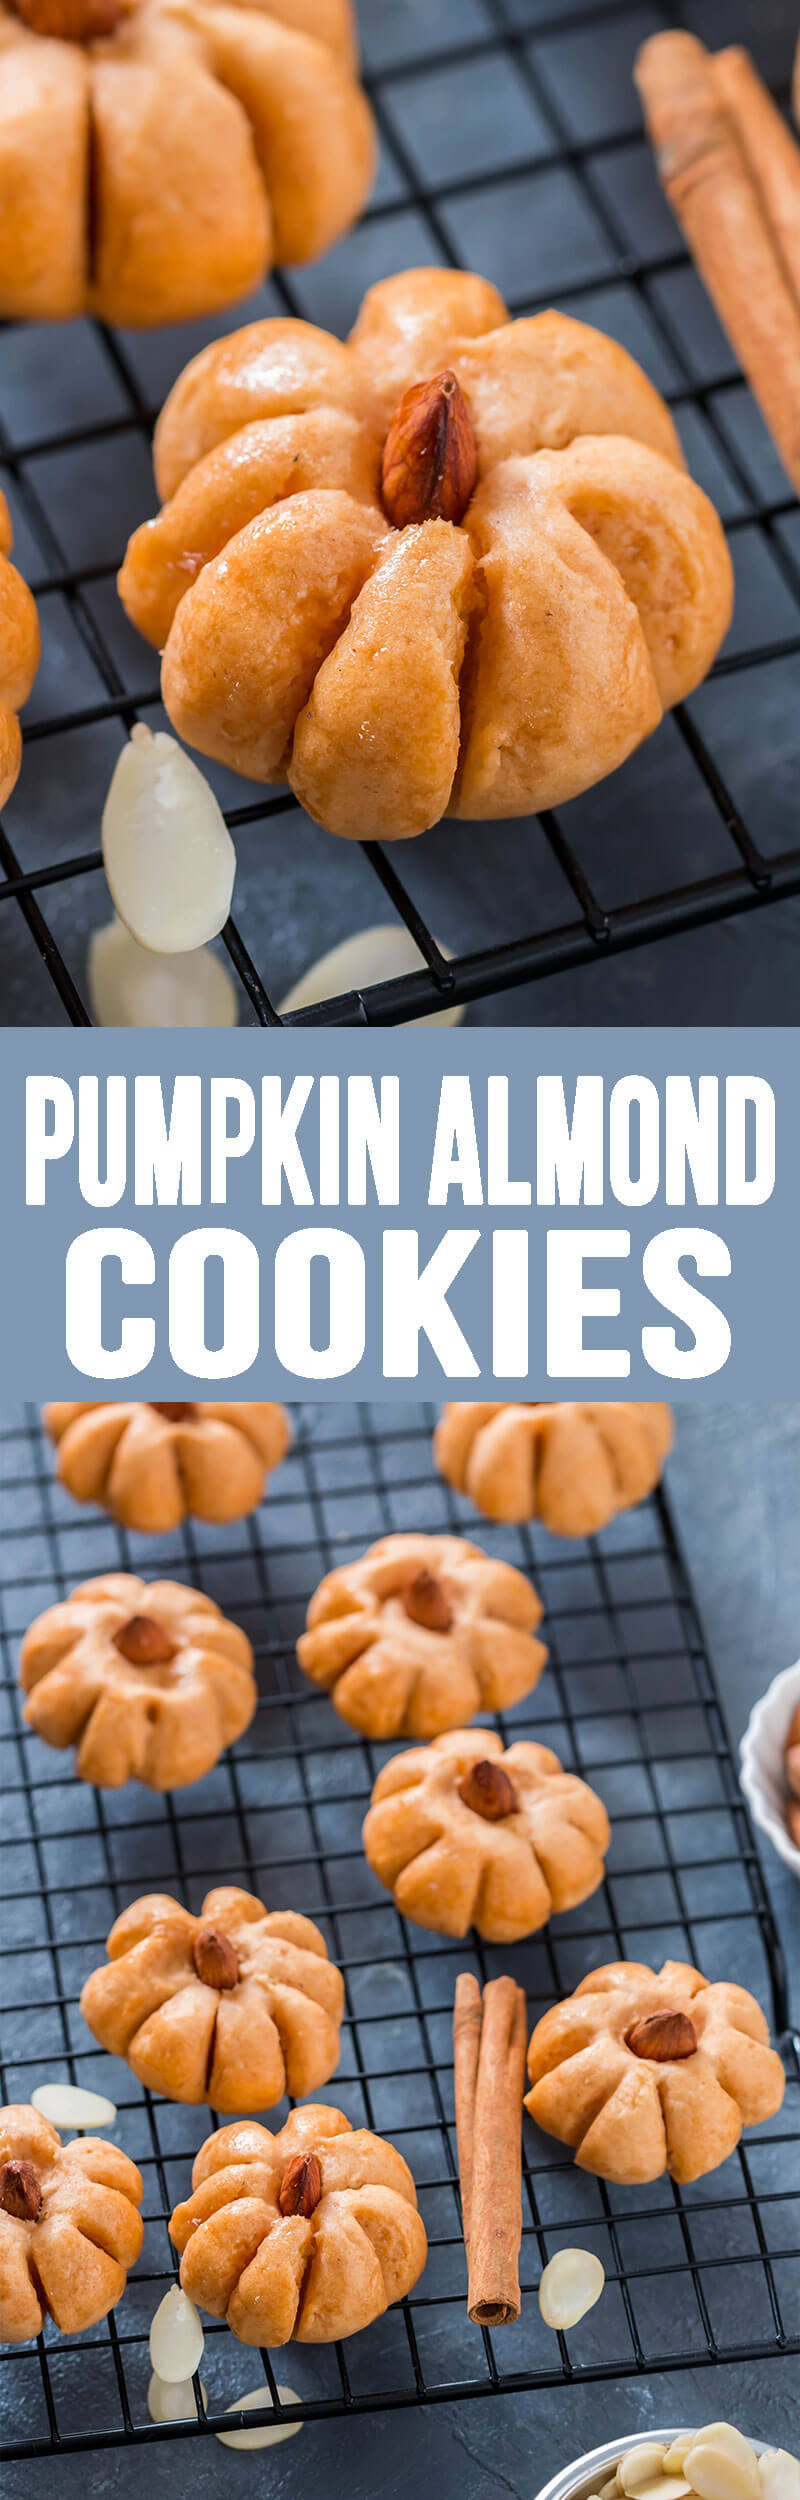 Pumpkin Almond Cookies